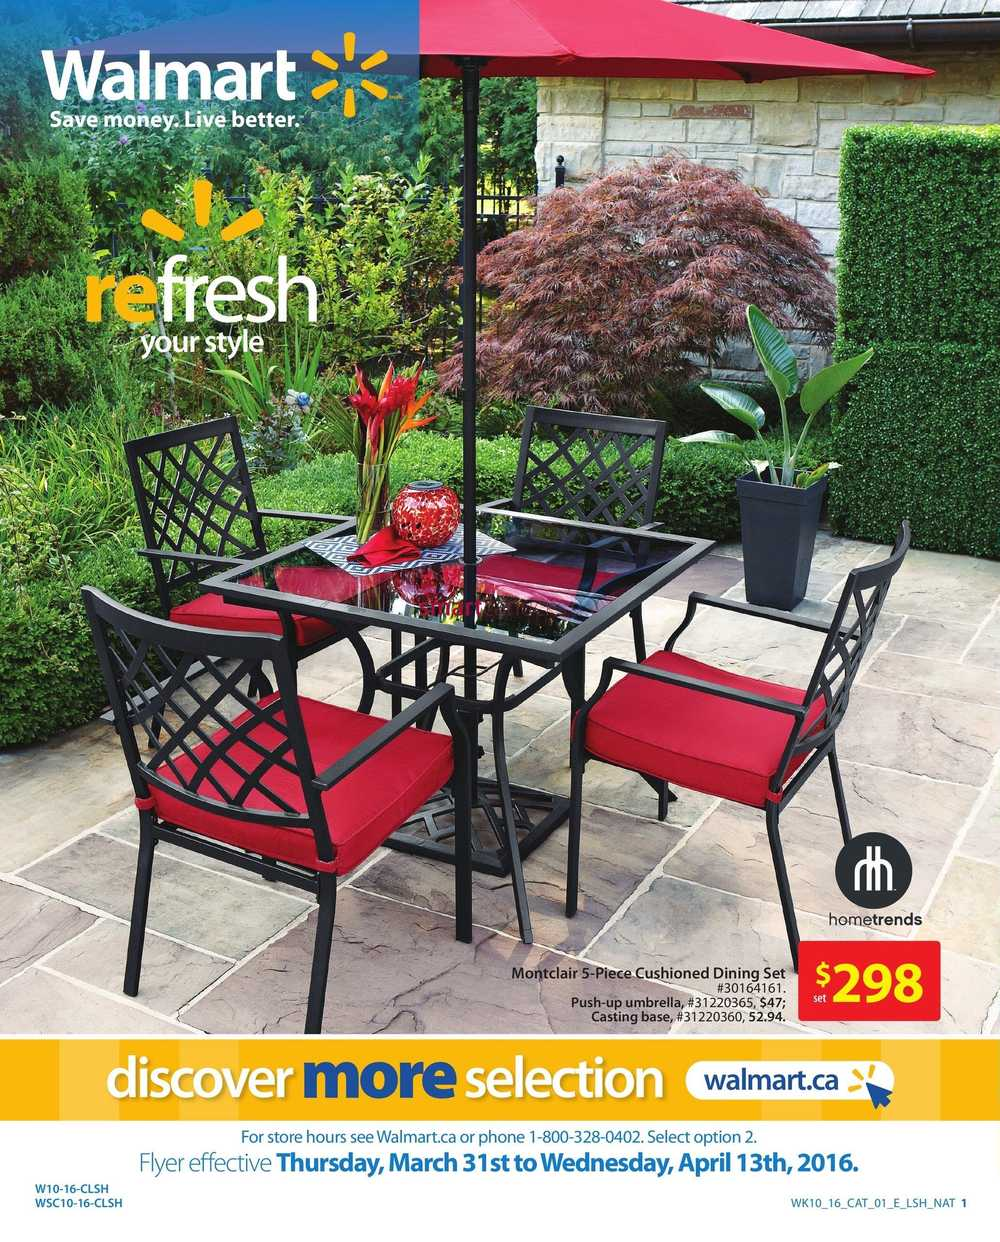 Walmart Patio, BBQ & Accessories Flyer March 31 to April 13